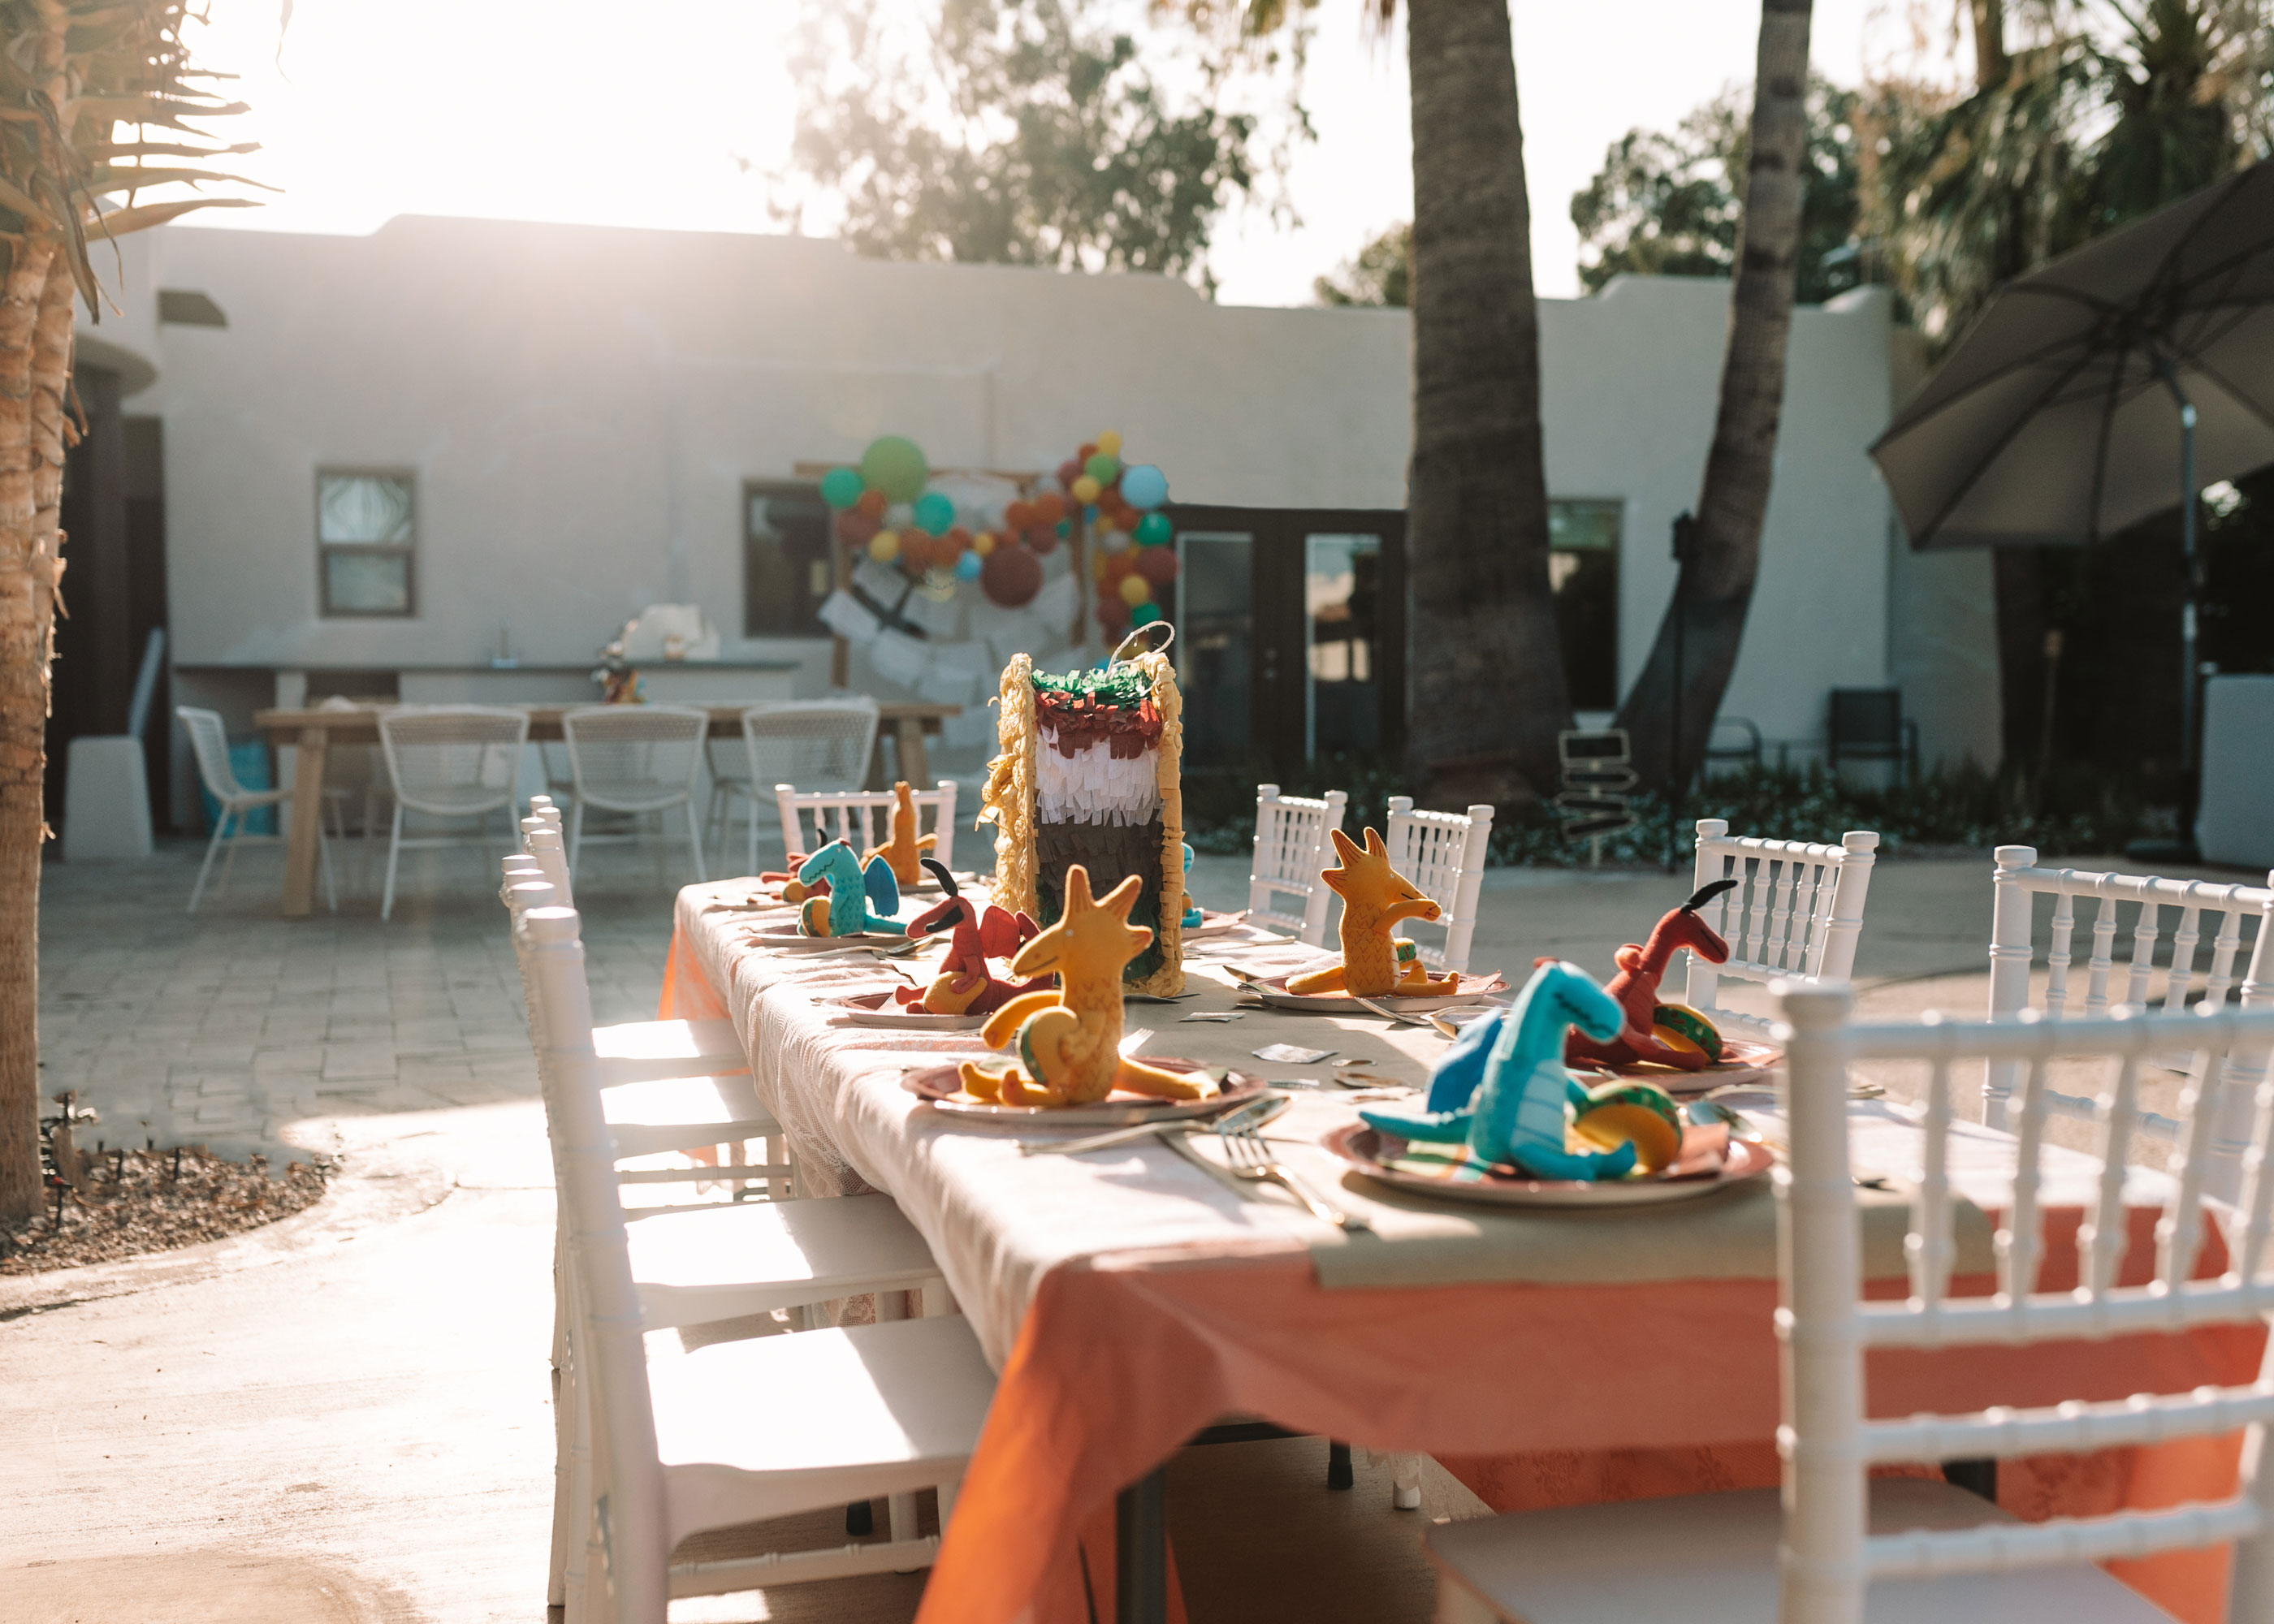 the kid's table all ready for the dragons love tacos party.